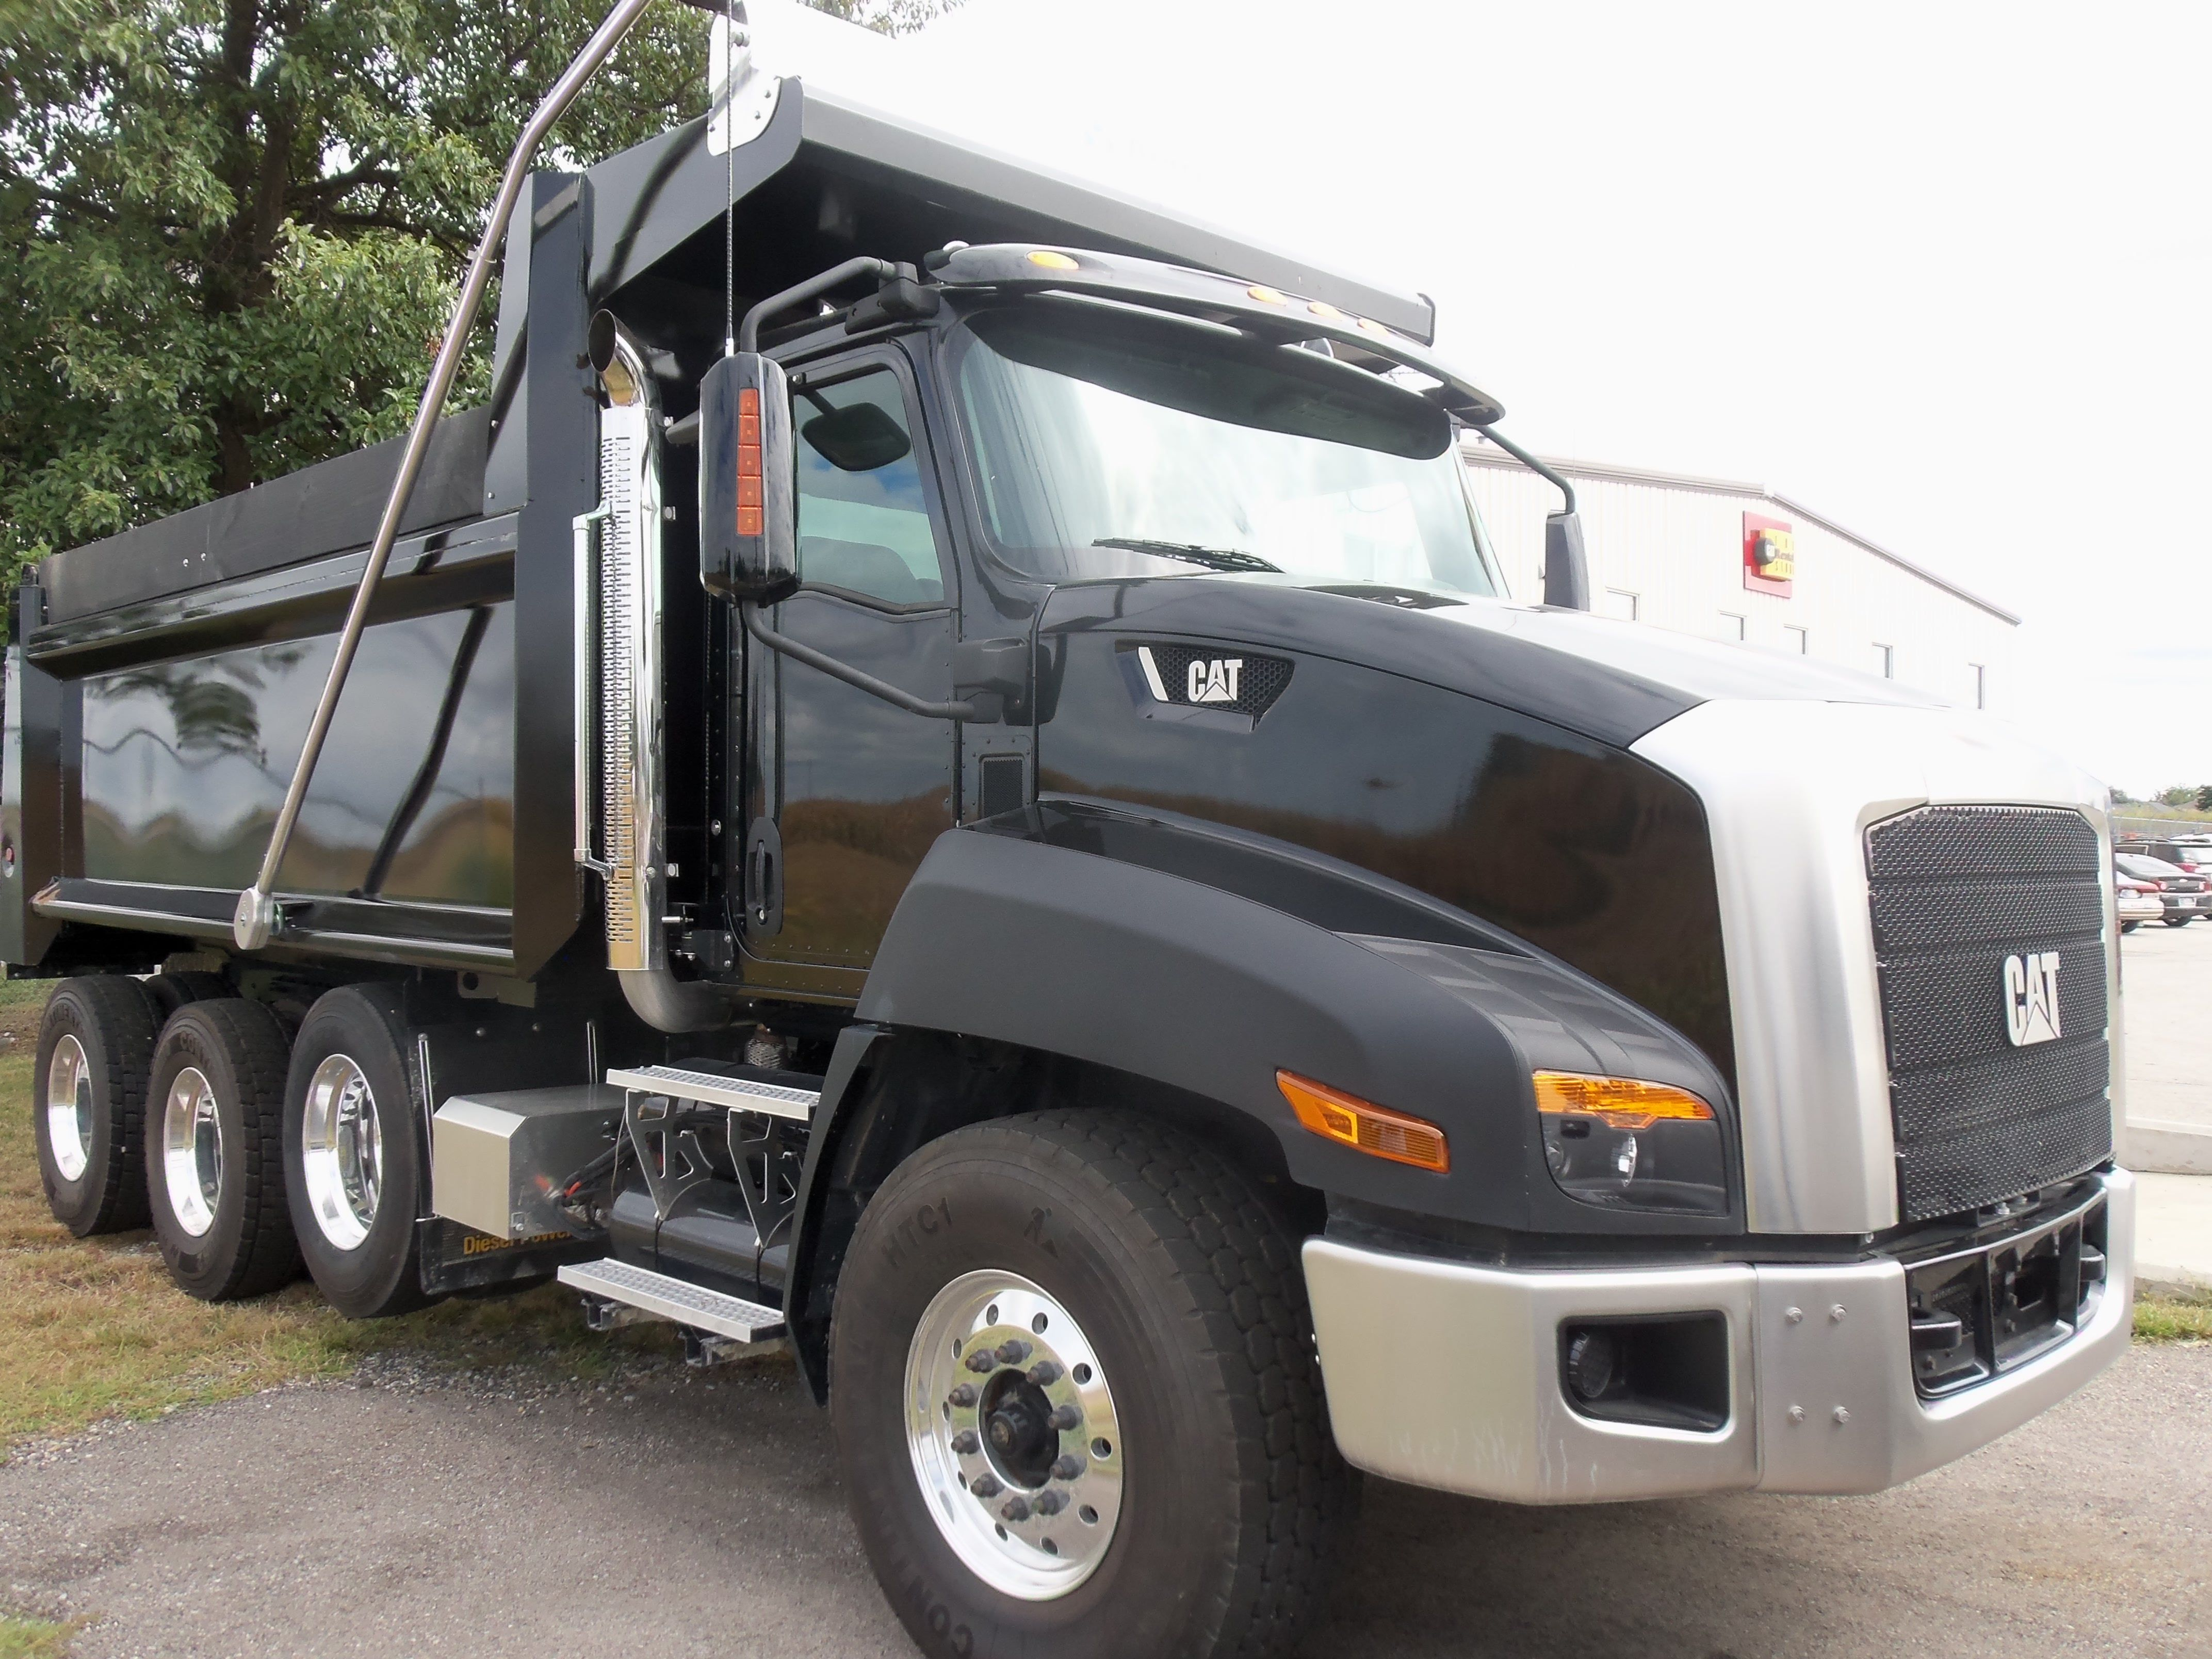 Caterpillar ct660 3 axle black dump truck